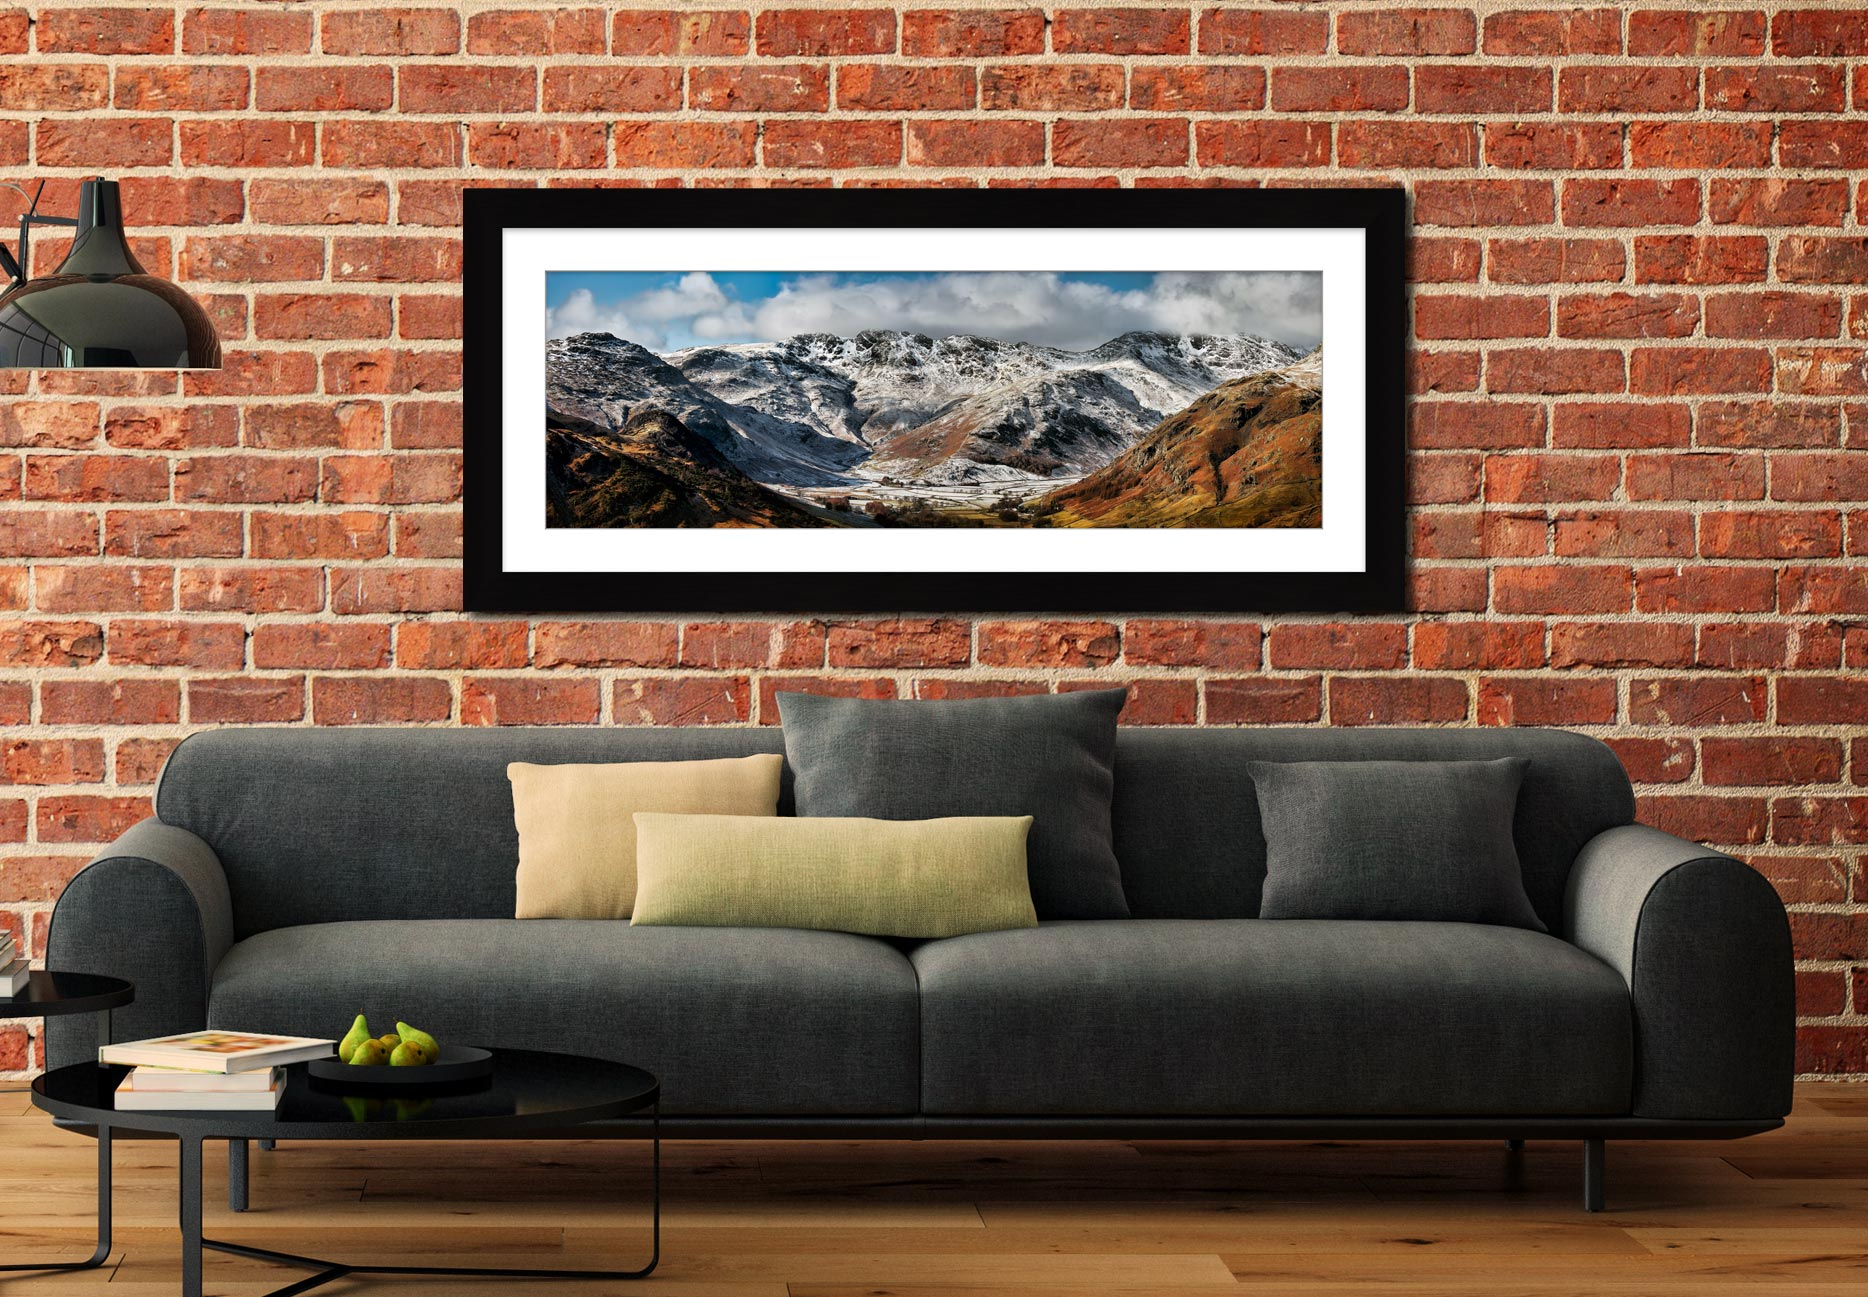 Snow on Crinkle Crags and Bow Fell - Framed Print with Mount on Wall